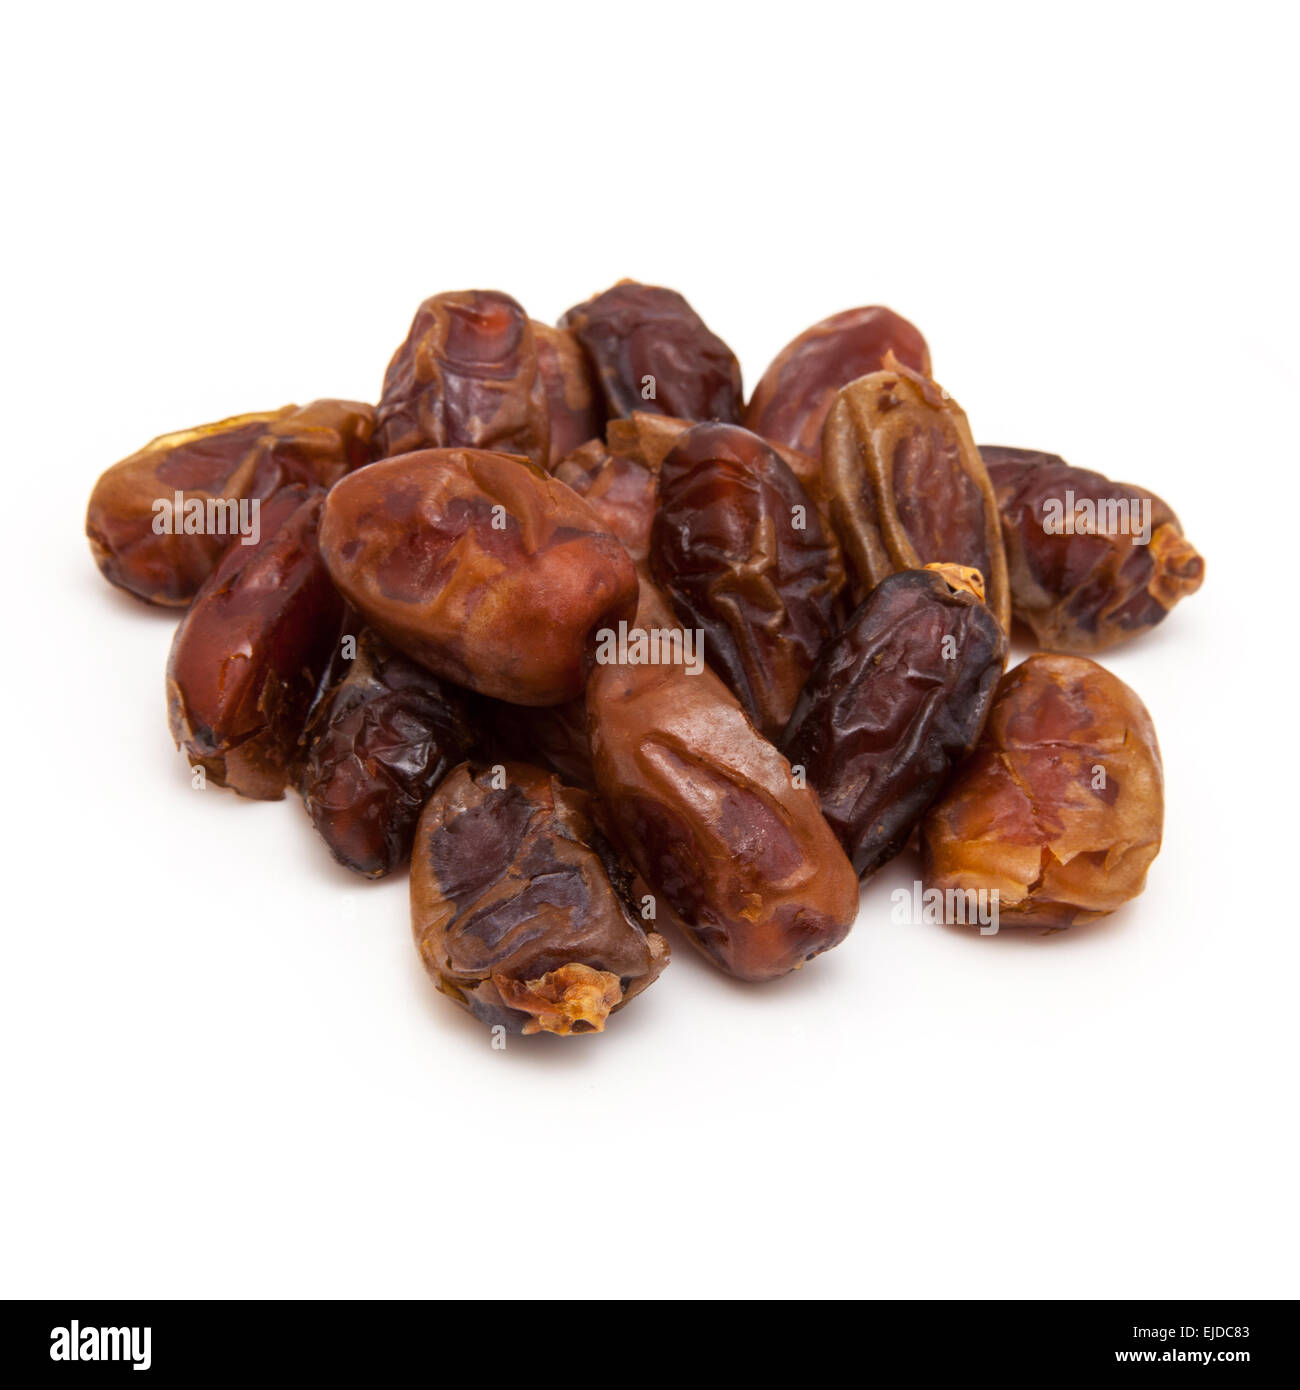 Halawi dates isolated on a white background.  Halawi dates originate from date trees in the deserts and farms of - Stock Image